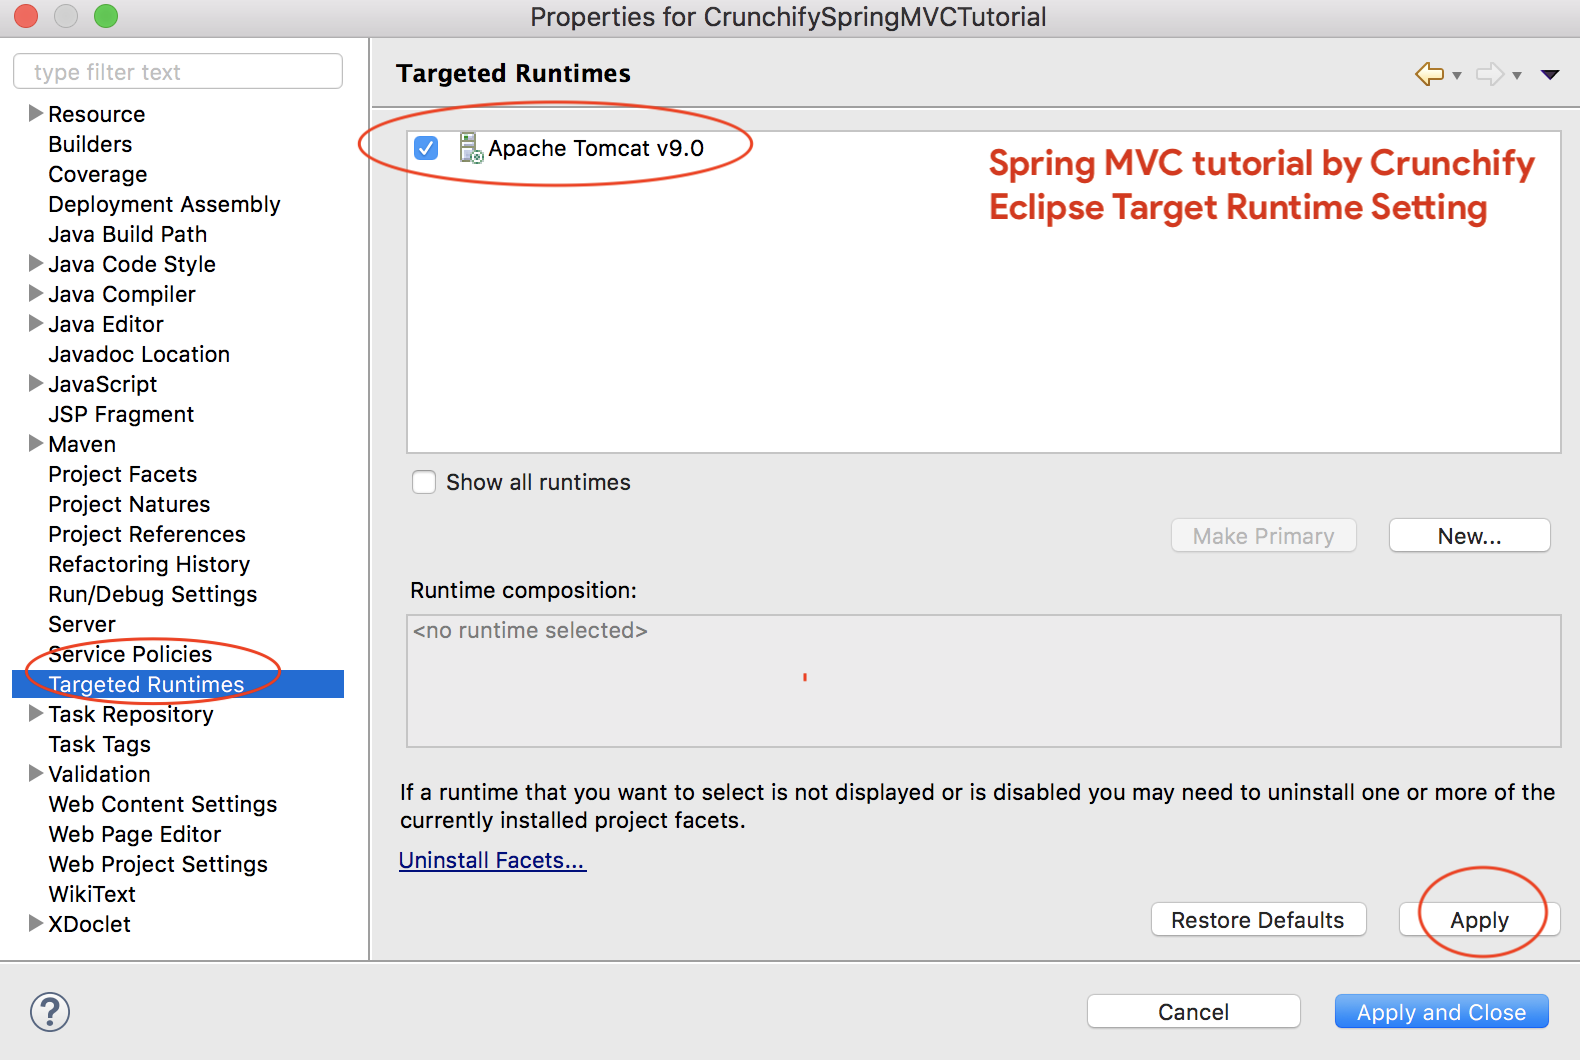 Spring MVC tutorial - Eclipse Target Runtime Setting